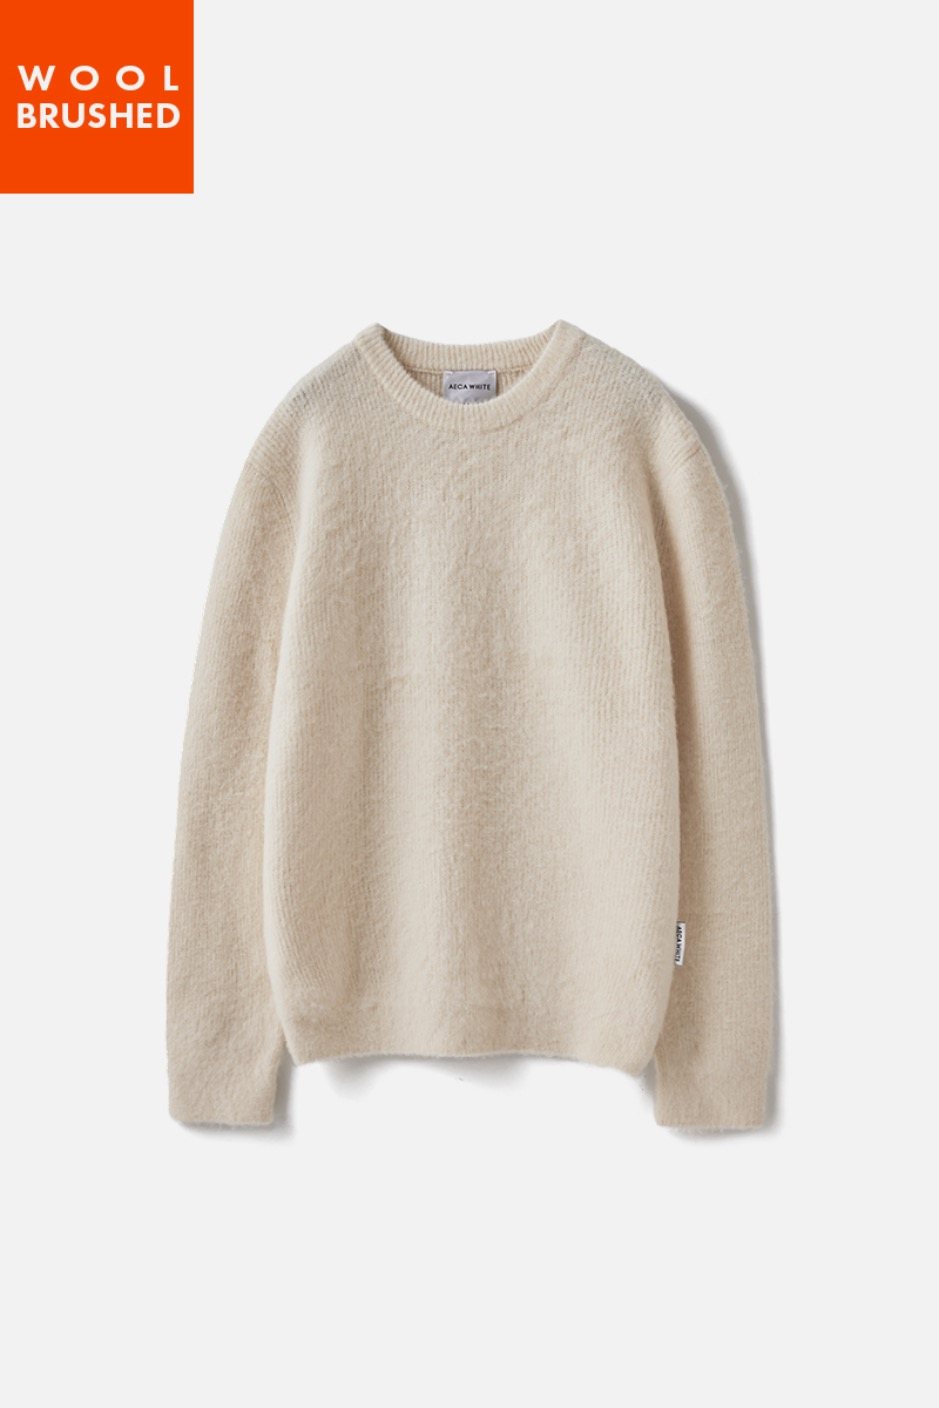 OVERSIZE WOOL BRUSHED KNIT-IVORY